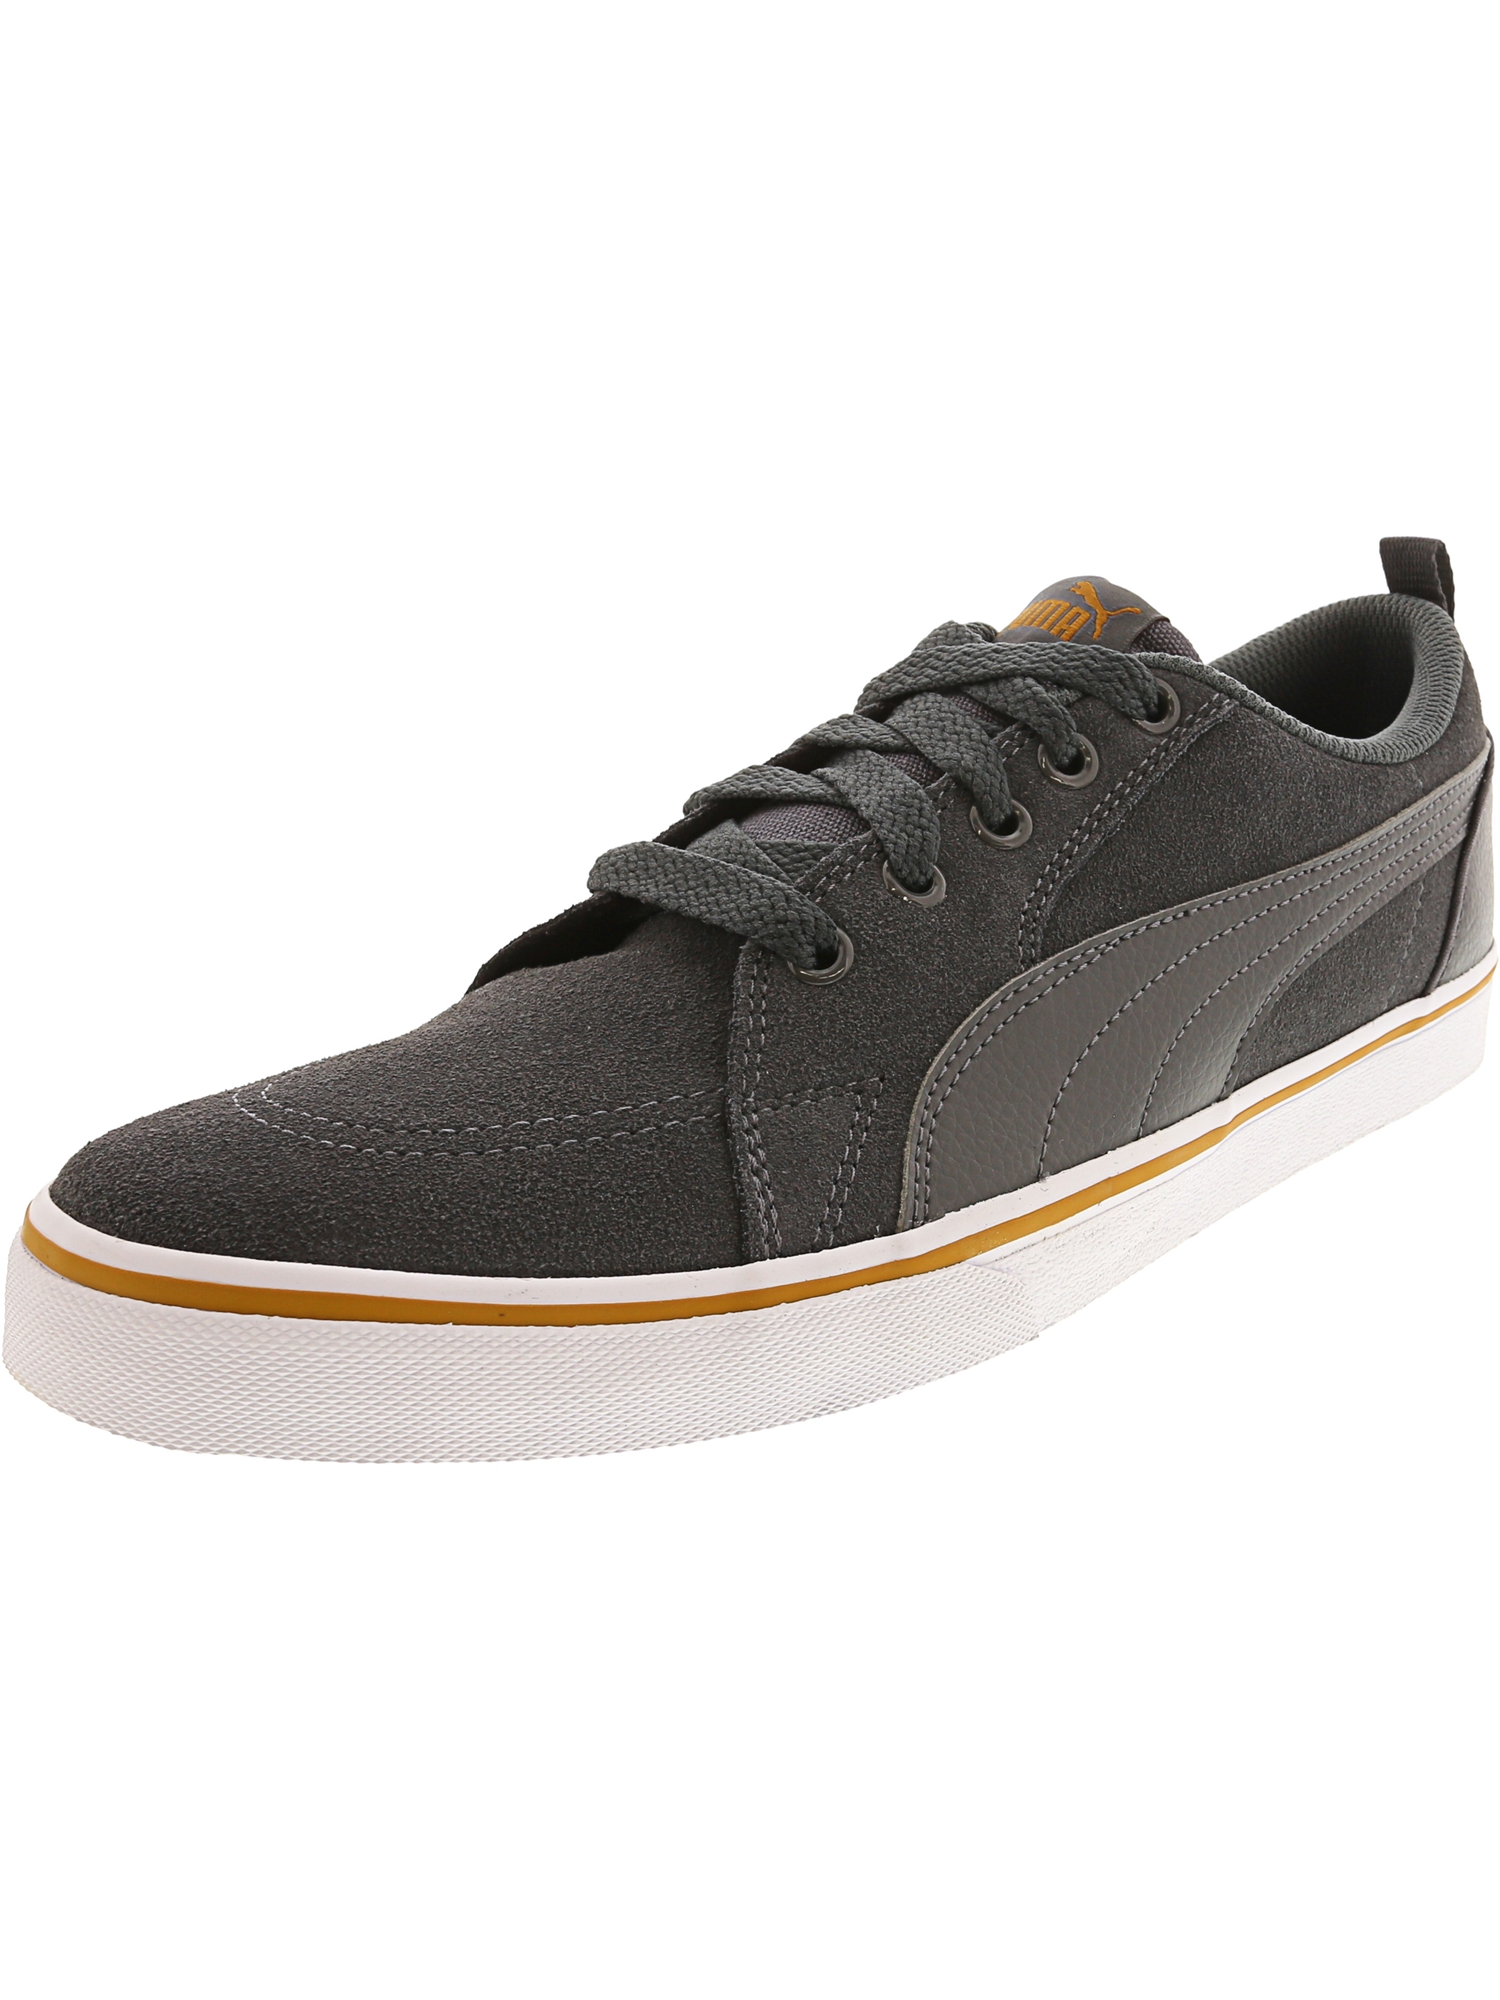 Puma Men's Bridger Sd Iron Gate / Ankle-High Suede Fashion Sneaker - 9M